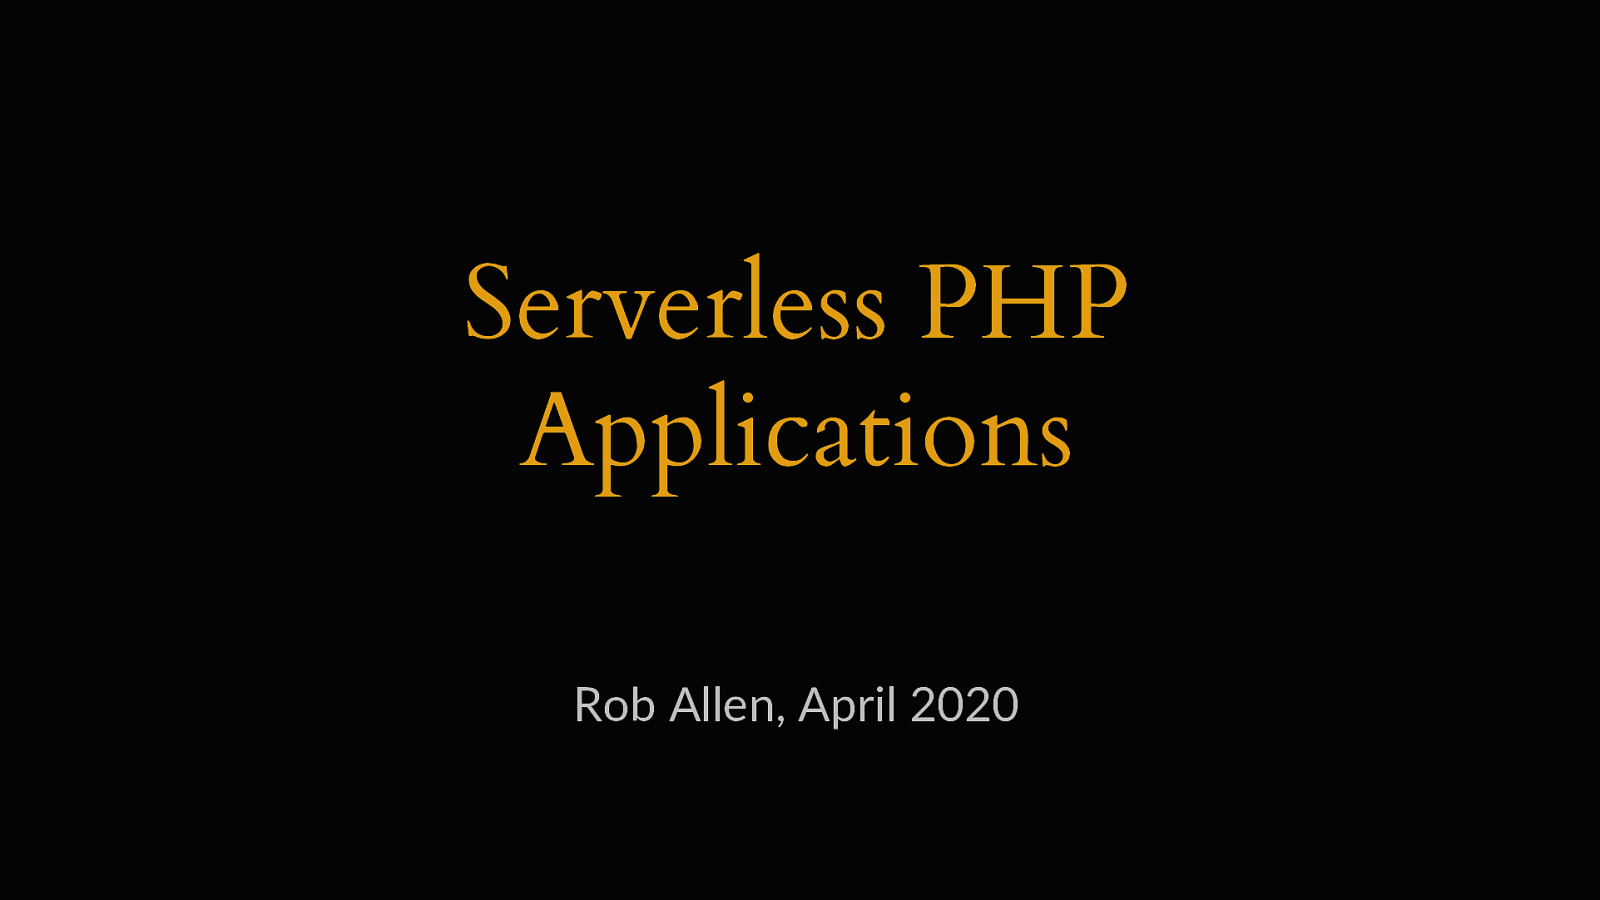 Serverless PHP Applications